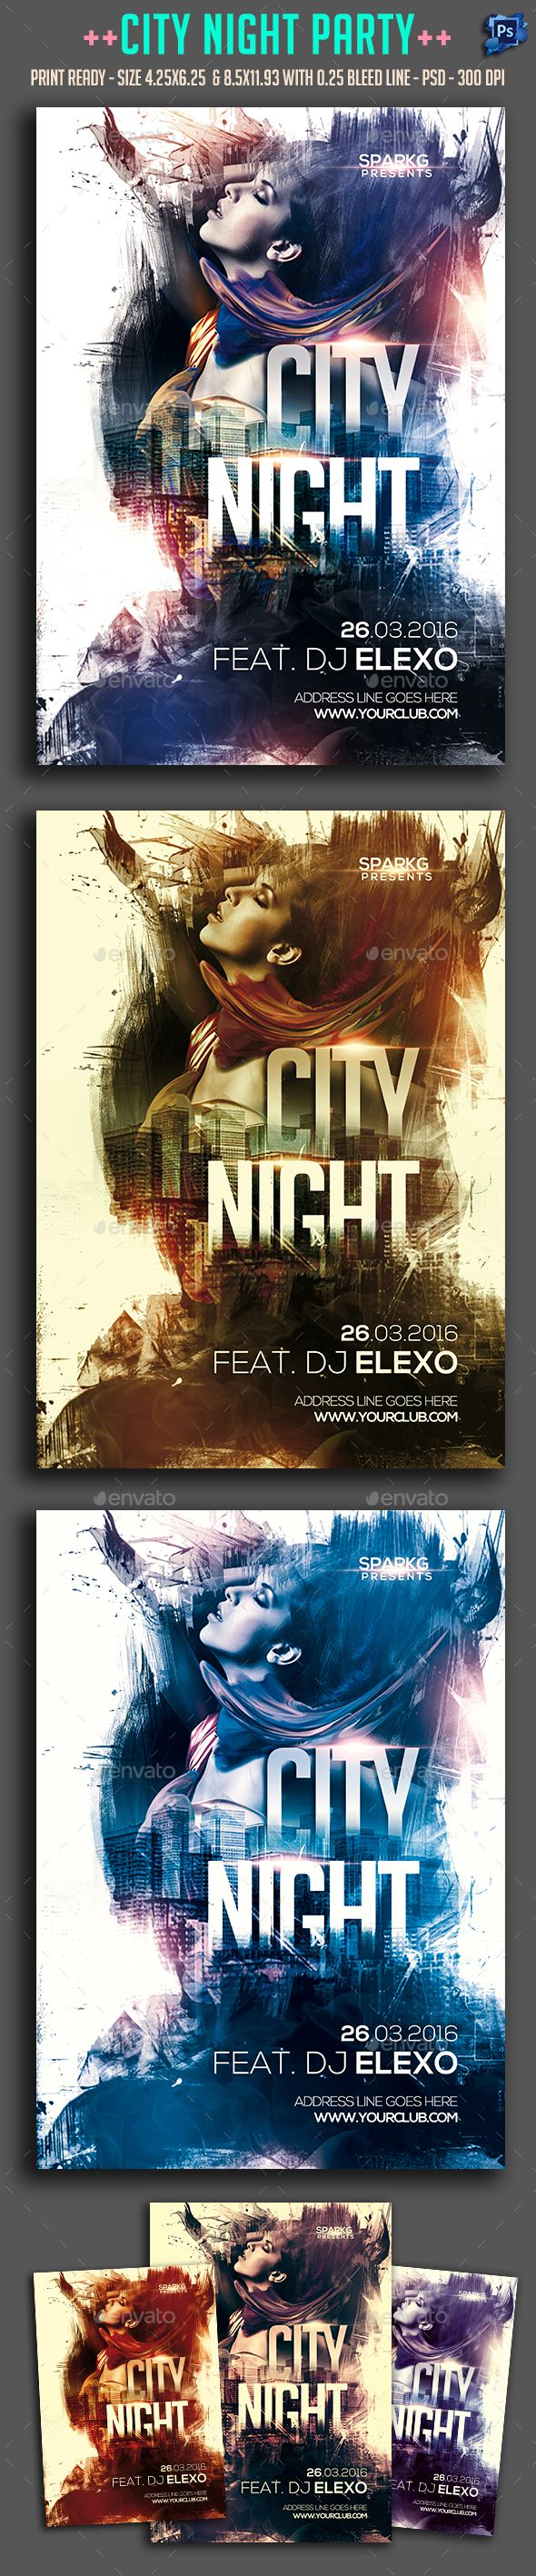 city night party flyer template psd design download http